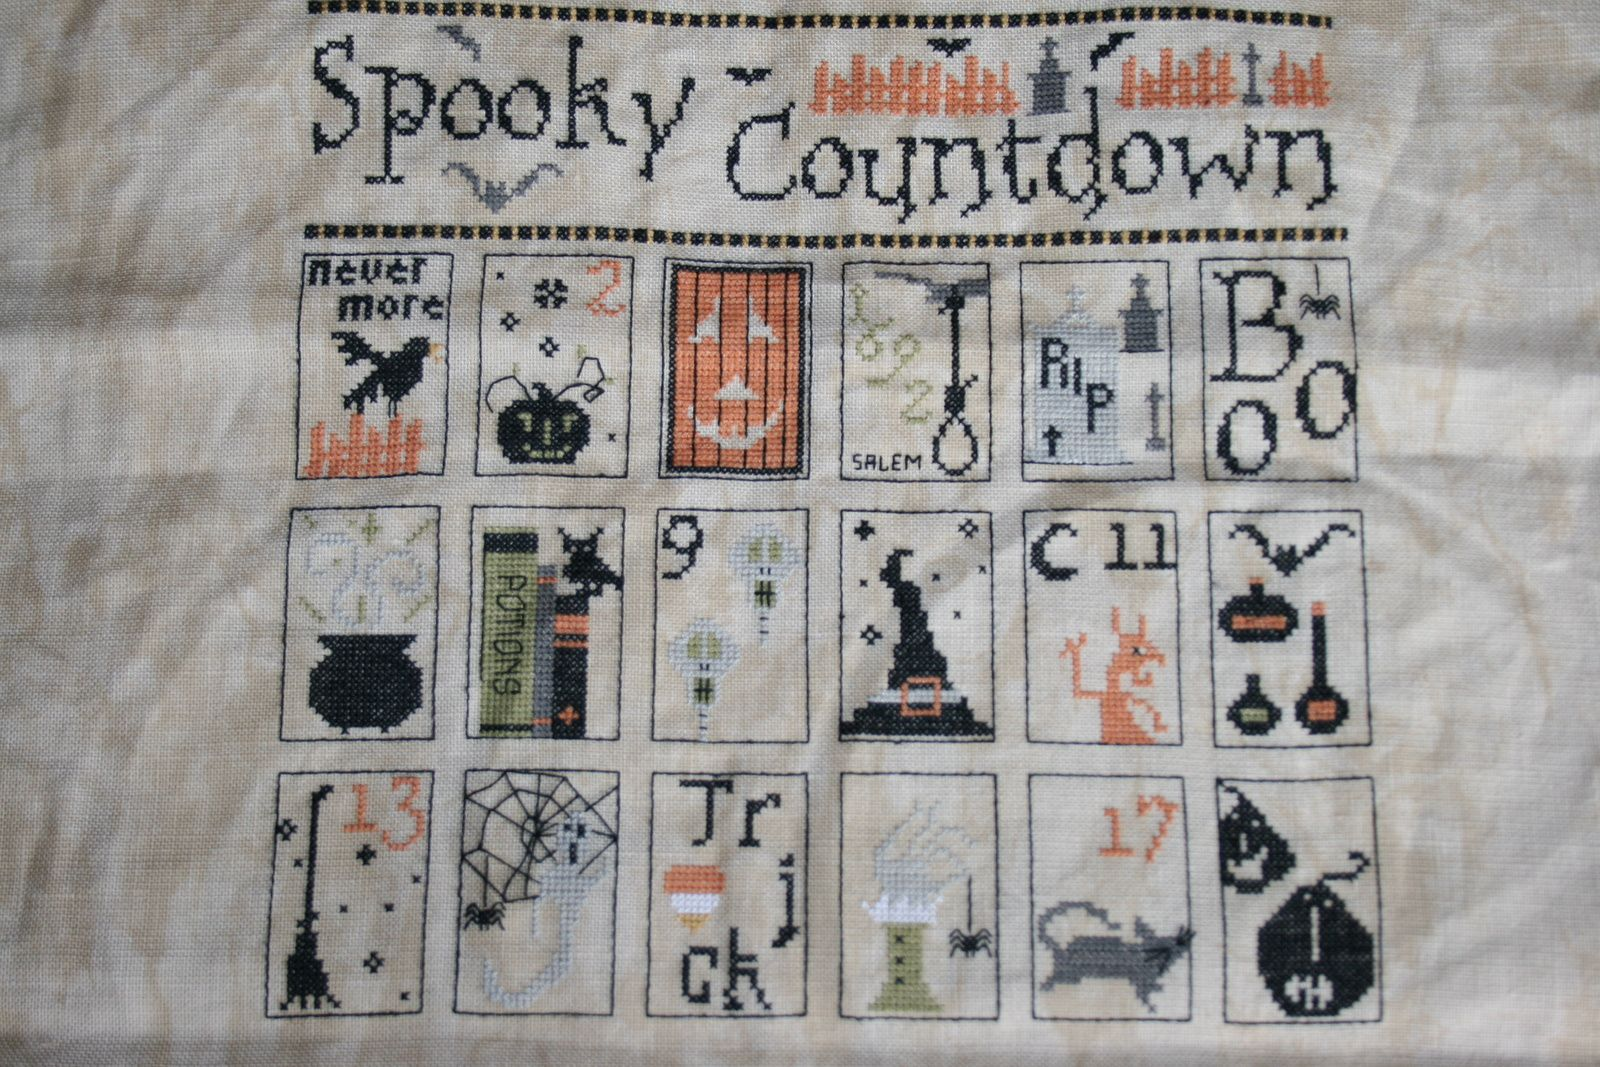 Spooky Countdown, the Primitive Hare